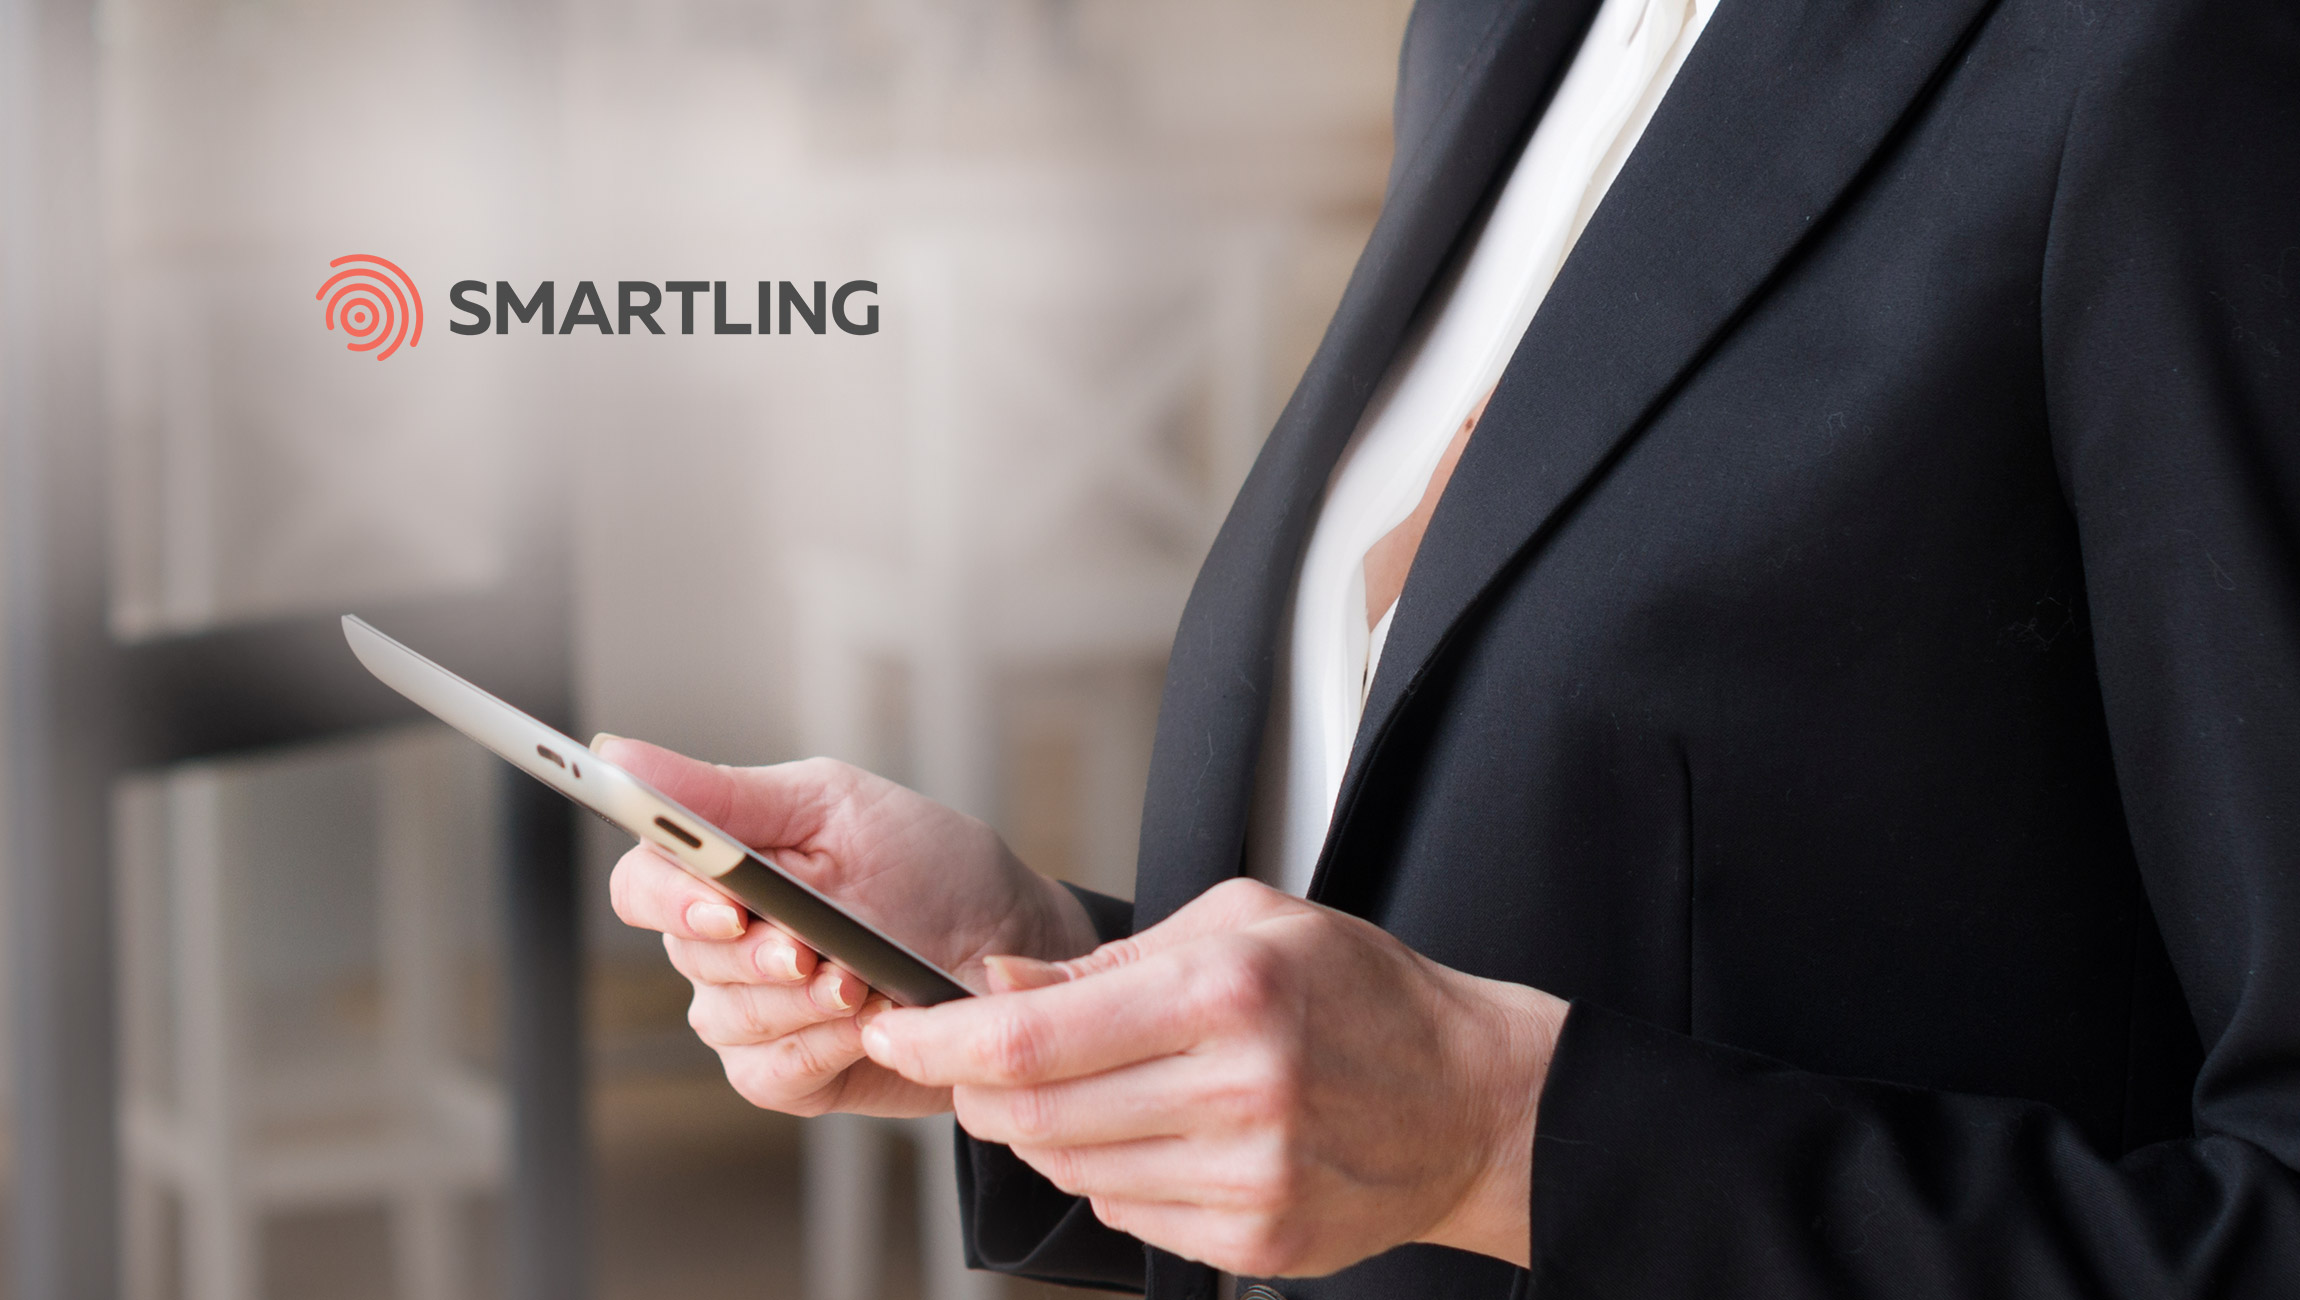 Smartling Announces Expanded Automation Capabilities at Global Ready Conference